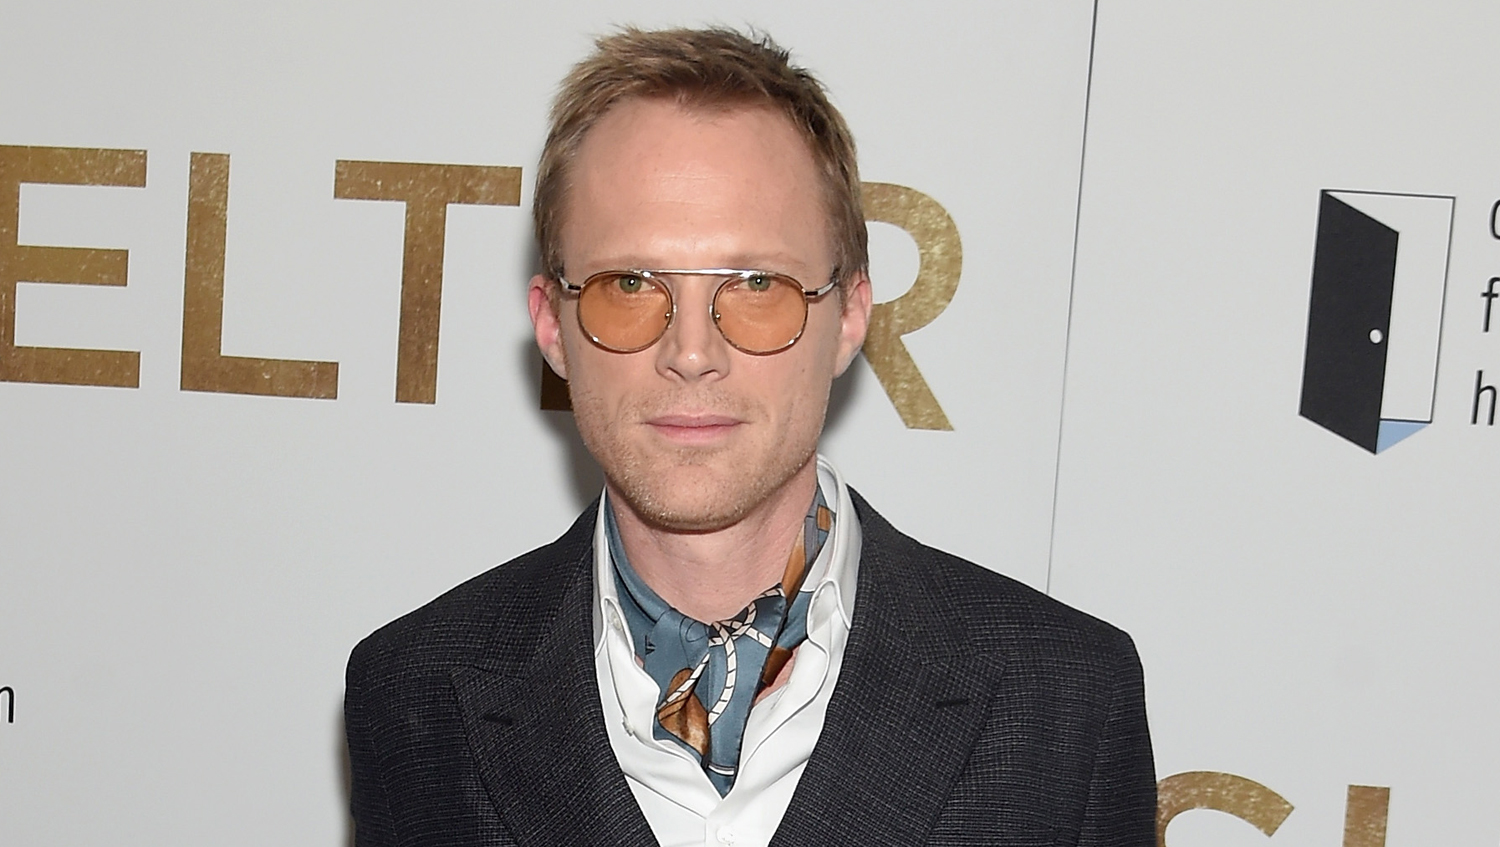 Paul Bettany Shares Set Photo From Star Wars Han Solo